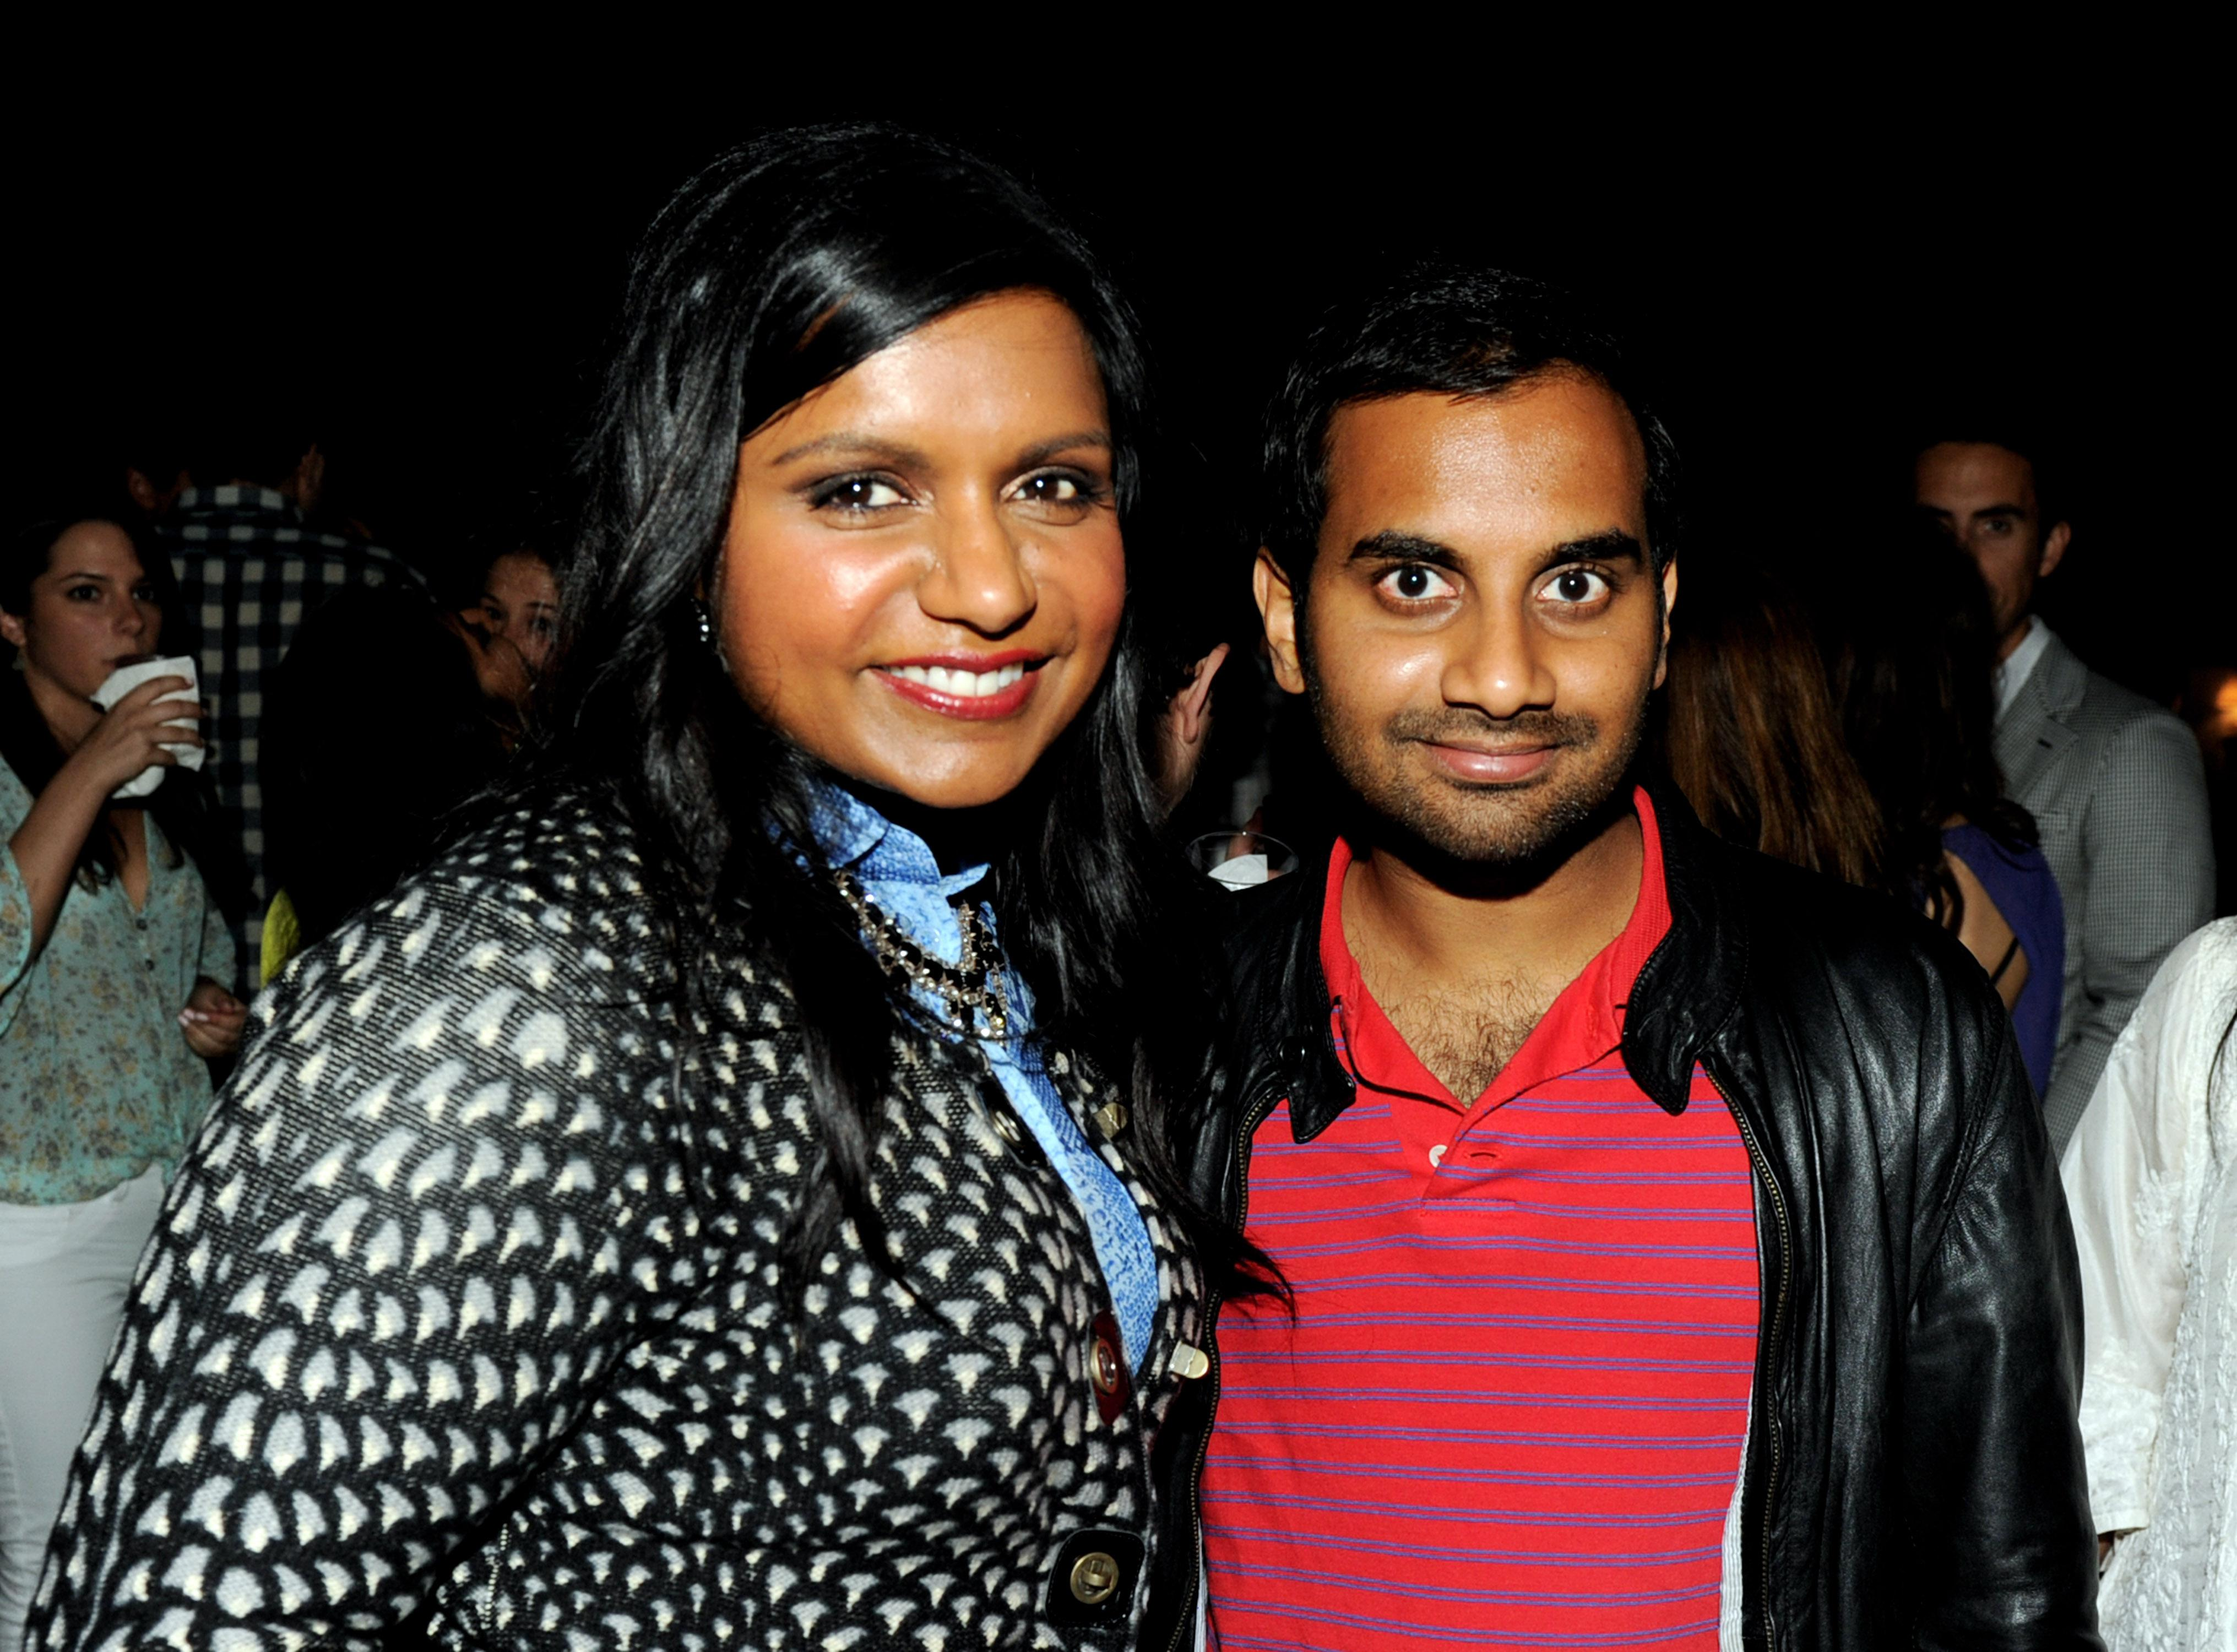 The Hollywood Reporter Celebrates Mindy Kaling And Her New Project 'The Mindy Project'